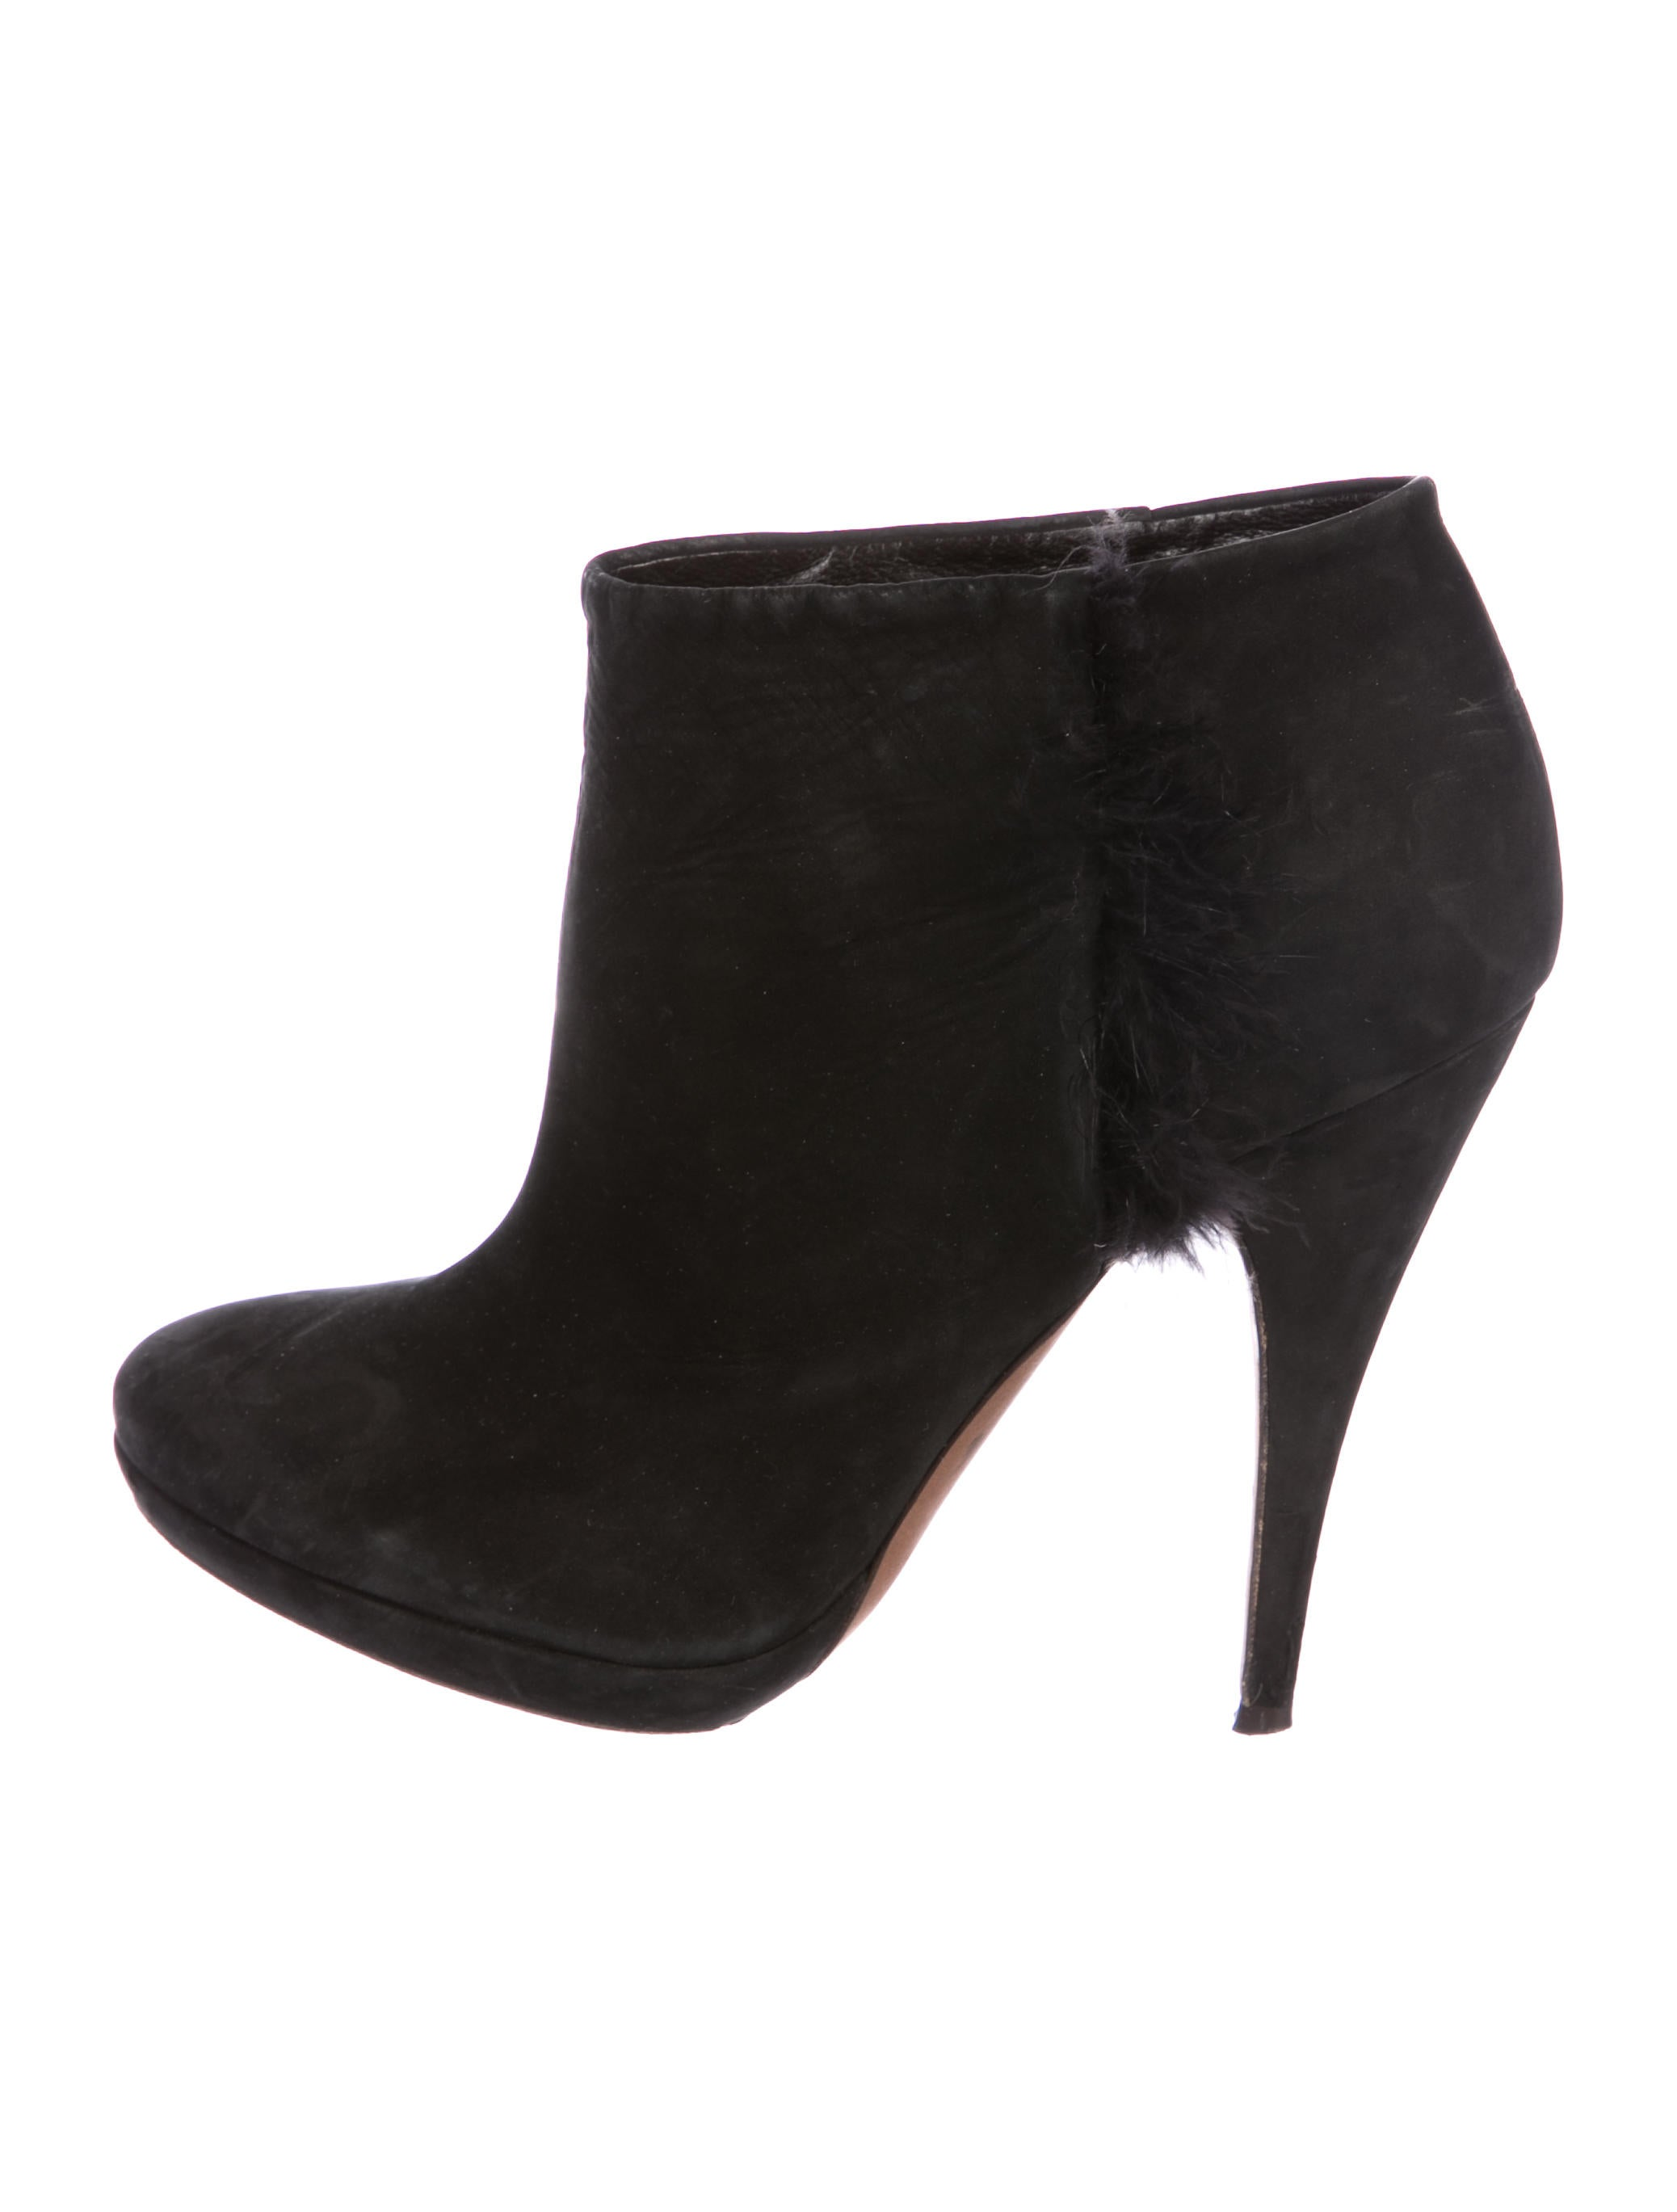 Nina Ricci Leather Round-Toe Booties free shipping best prices visit new for sale visit free shipping 100% guaranteed tqYGyfhgOZ